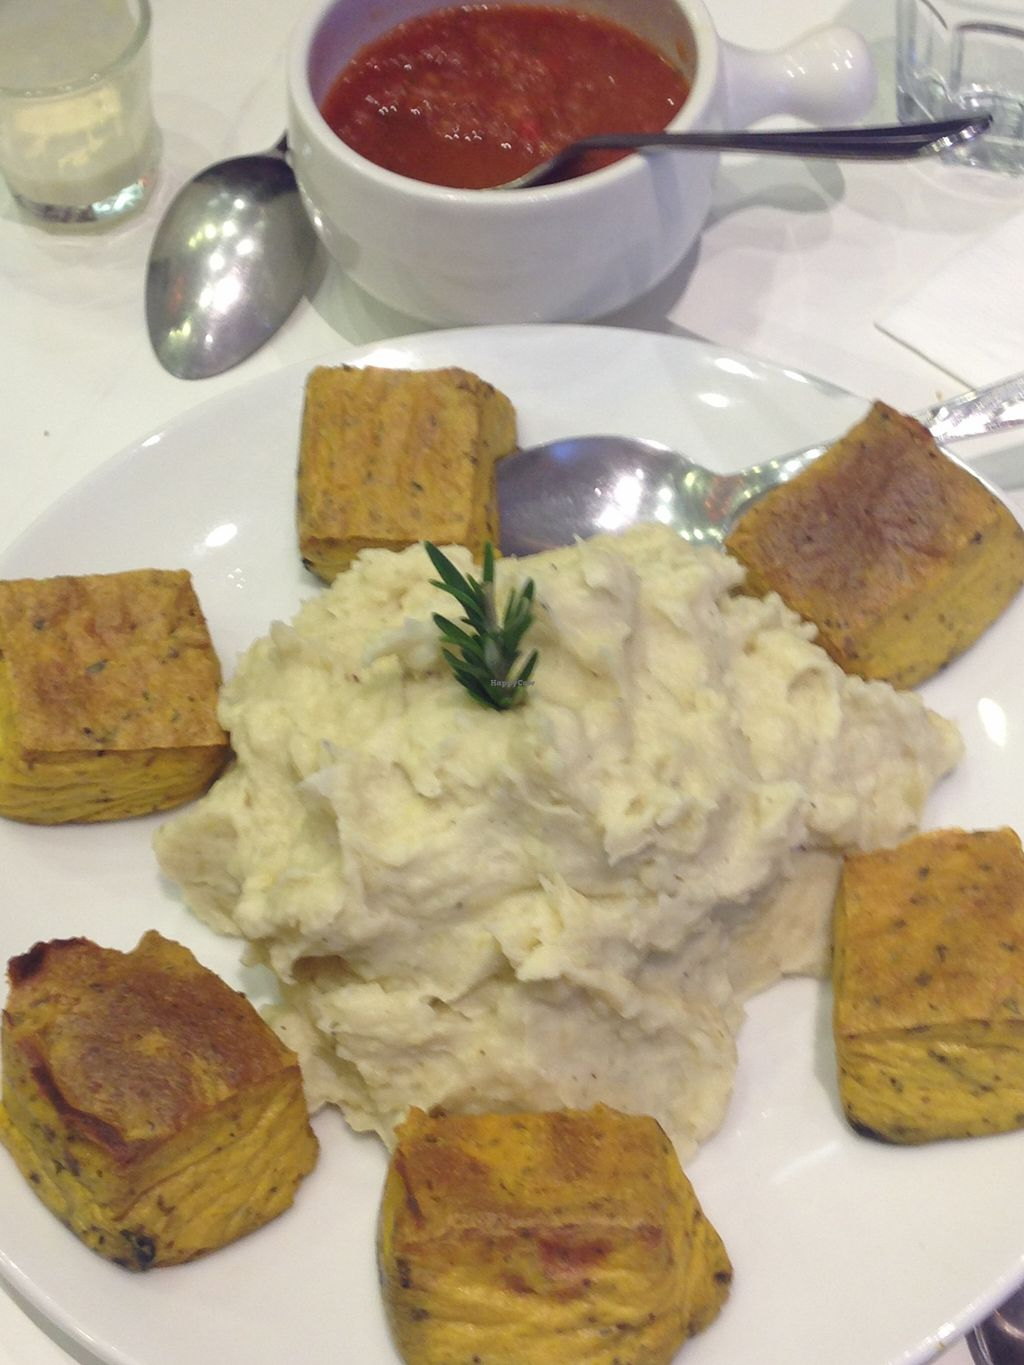 """Photo of Maya Cafe  by <a href=""""/members/profile/Stevie"""">Stevie</a> <br/>http://www.meetup.com/Meat-Free-Hong-Kong/events/228744020/ pic 8 <br/> February 20, 2016  - <a href='/contact/abuse/image/61407/136971'>Report</a>"""